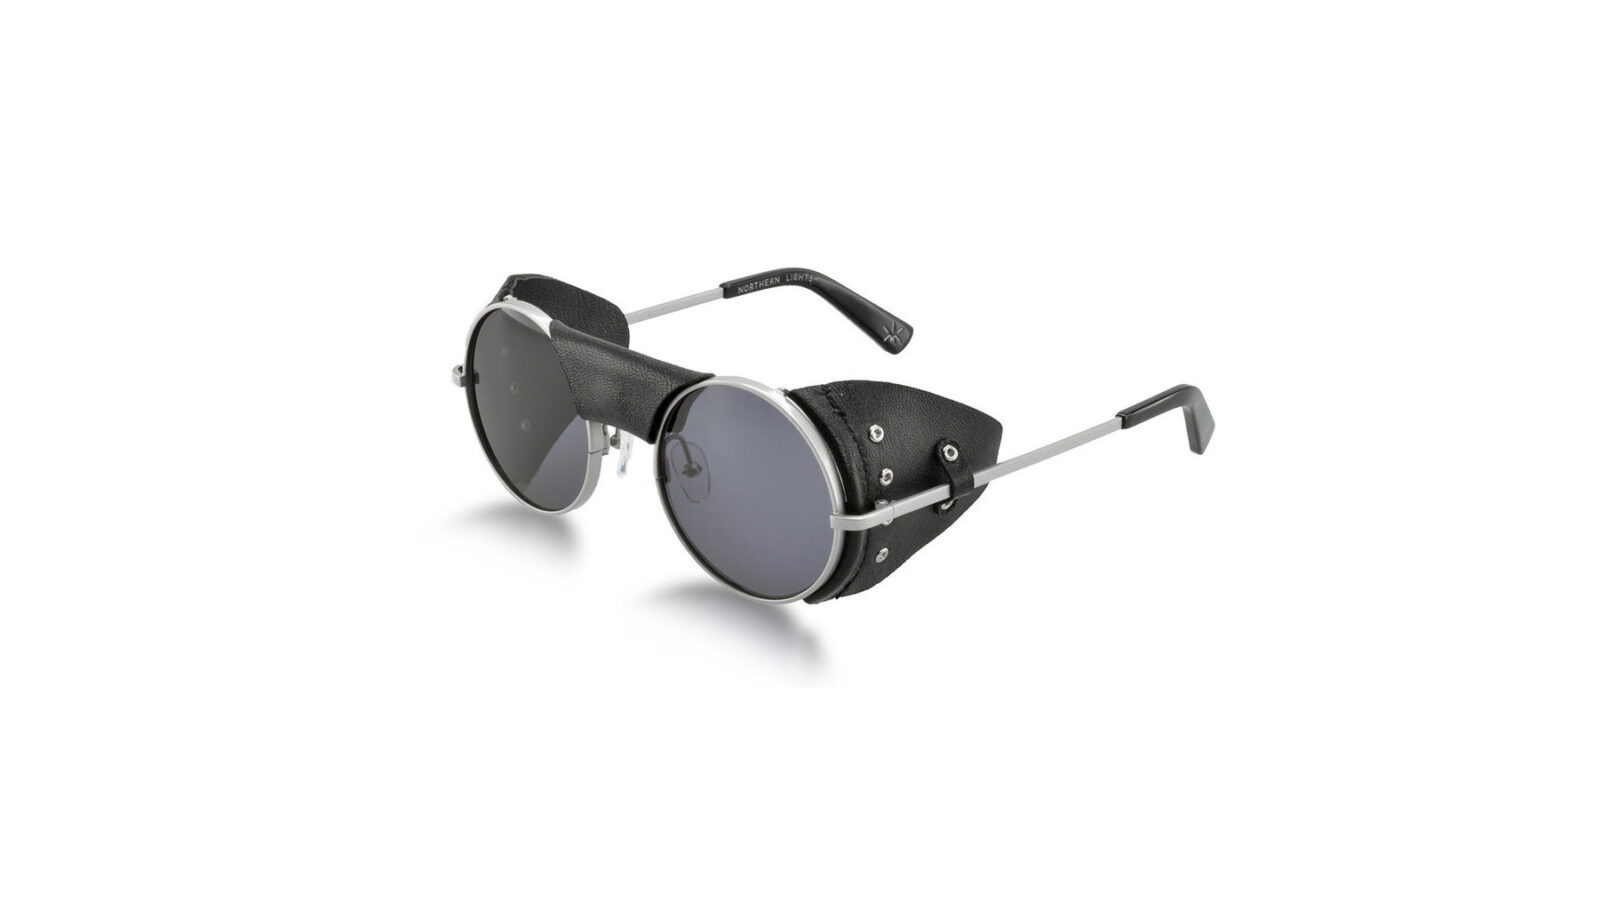 Hiking Sunglasses 1600x919 - Mountaineering Sunglasses by Northern Lights Optic